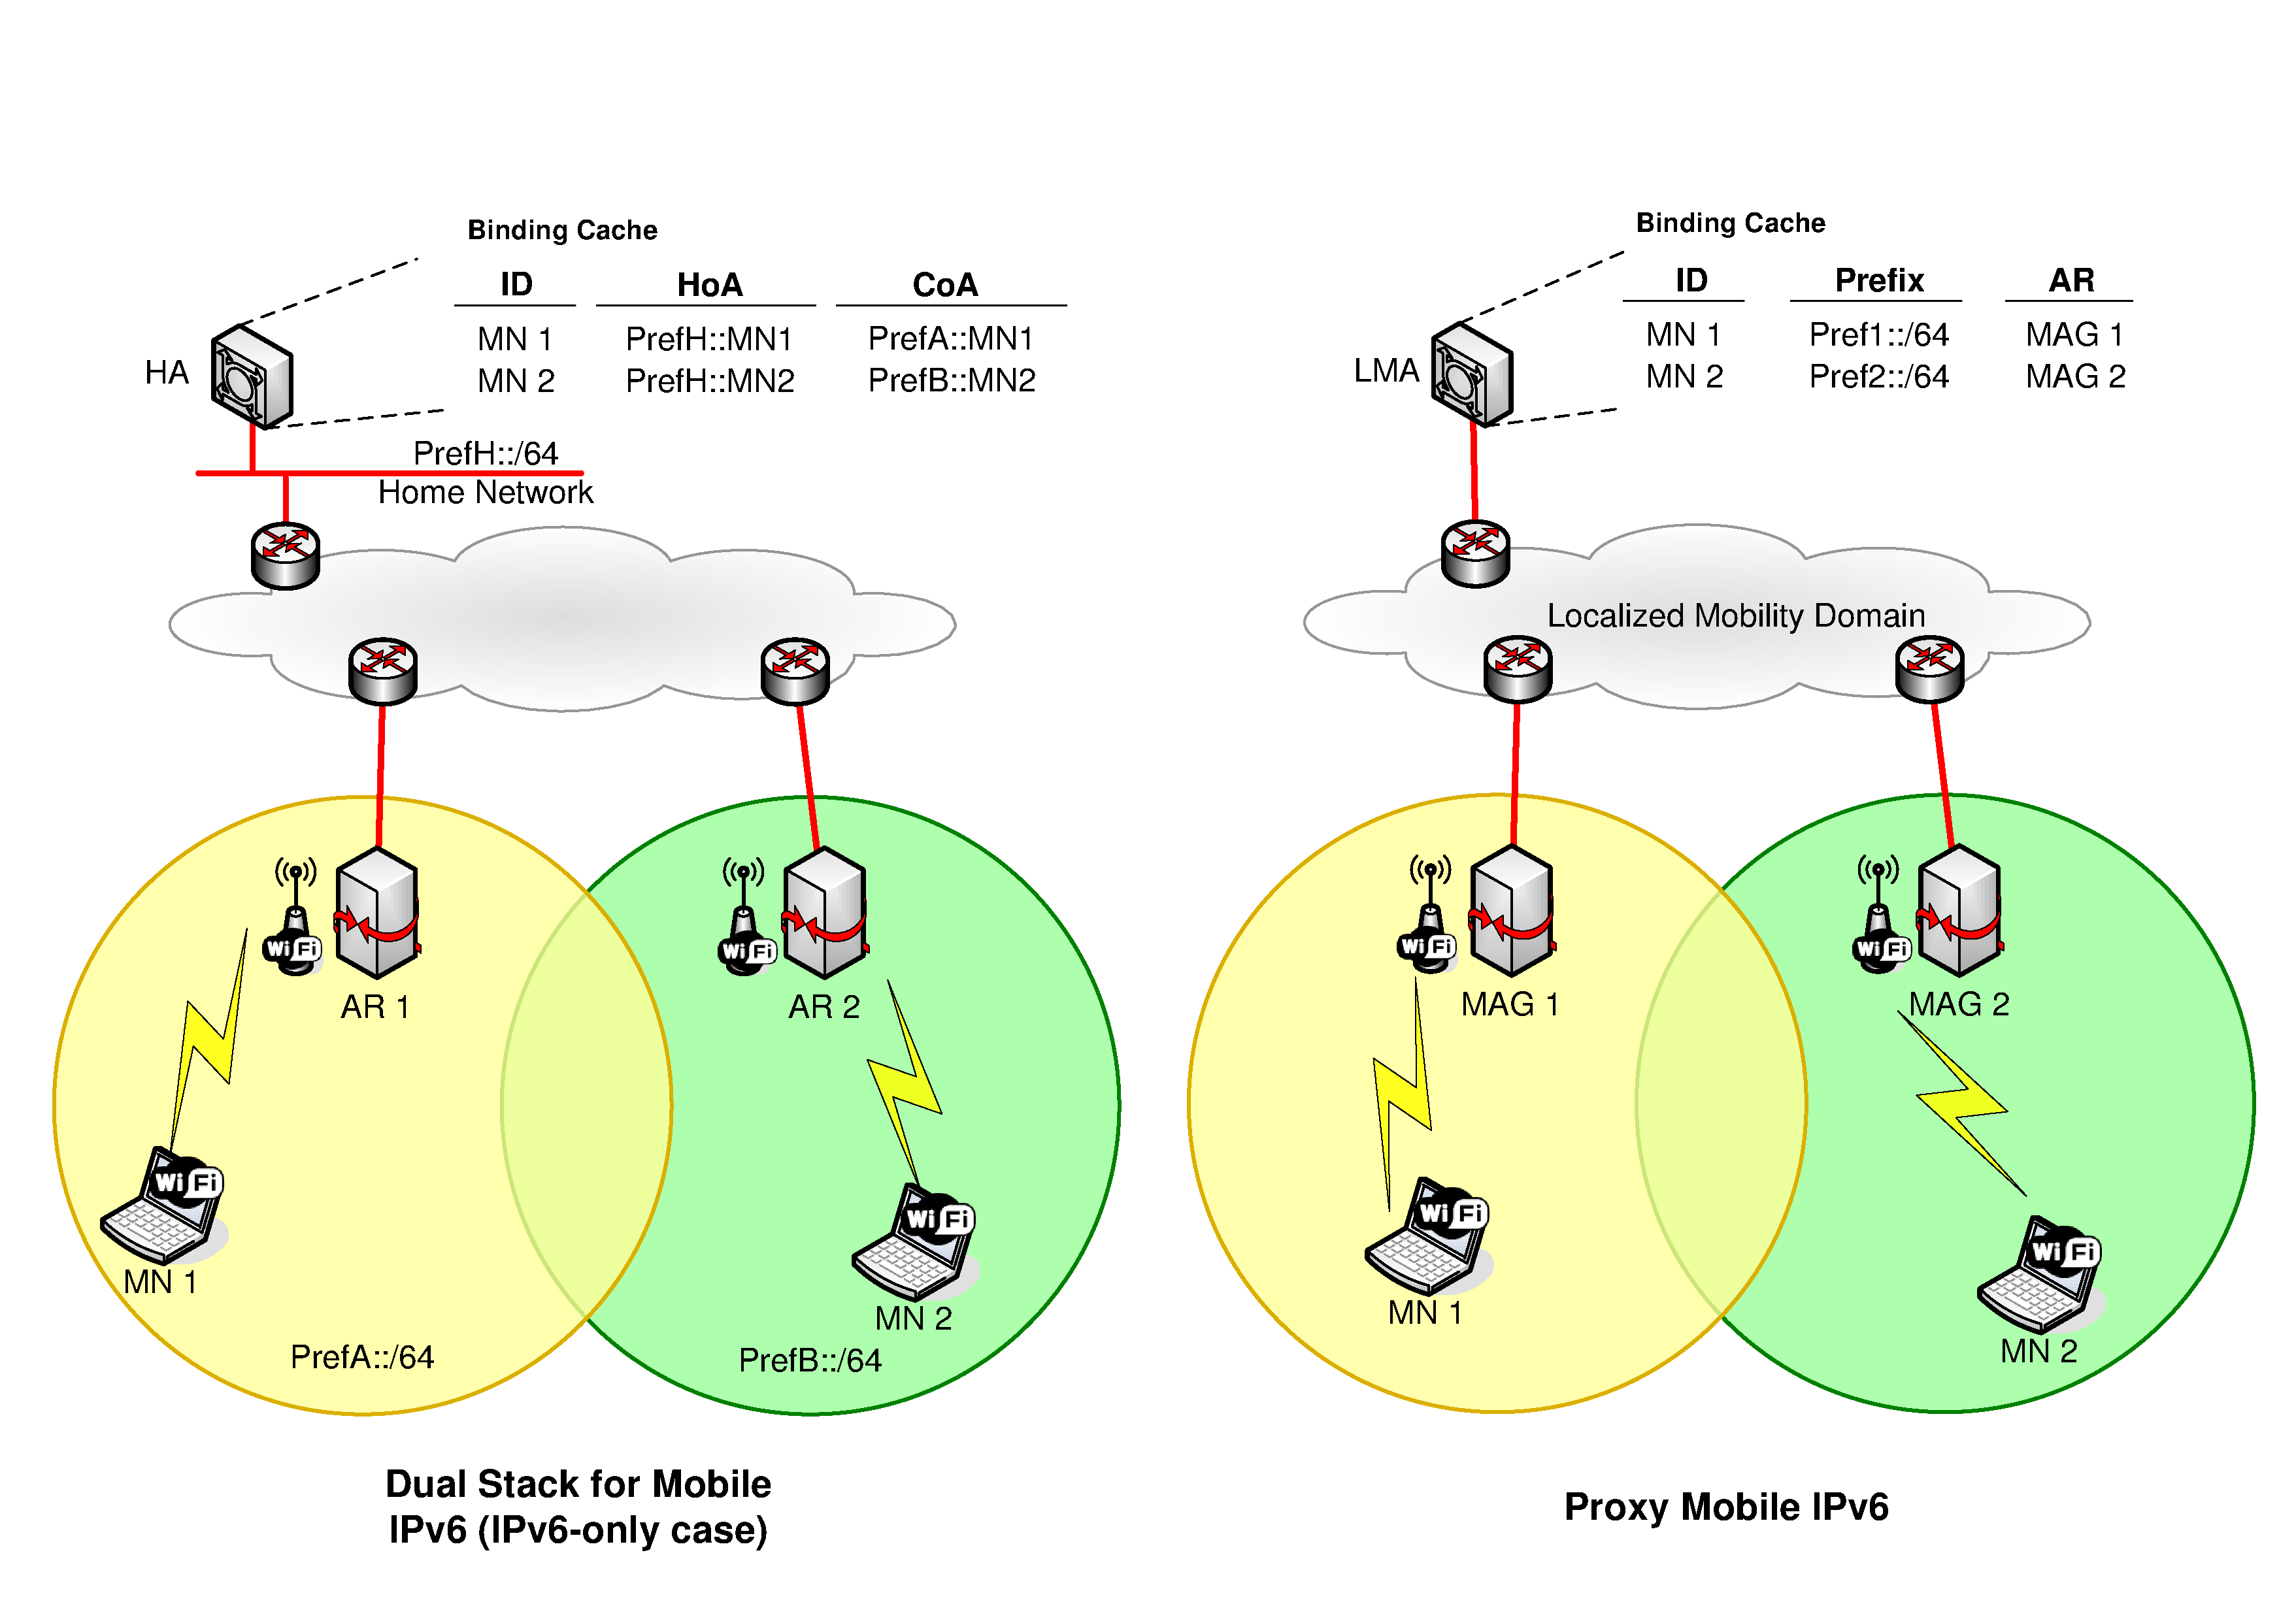 2 Fig. 1. Dual Stack for MIPv6 and PMIPv6 overview changes of point of attachment. Dual Stack for Mobile IPv6 [1] is standardized by the IETF to provide basic client IP mobility support. A.